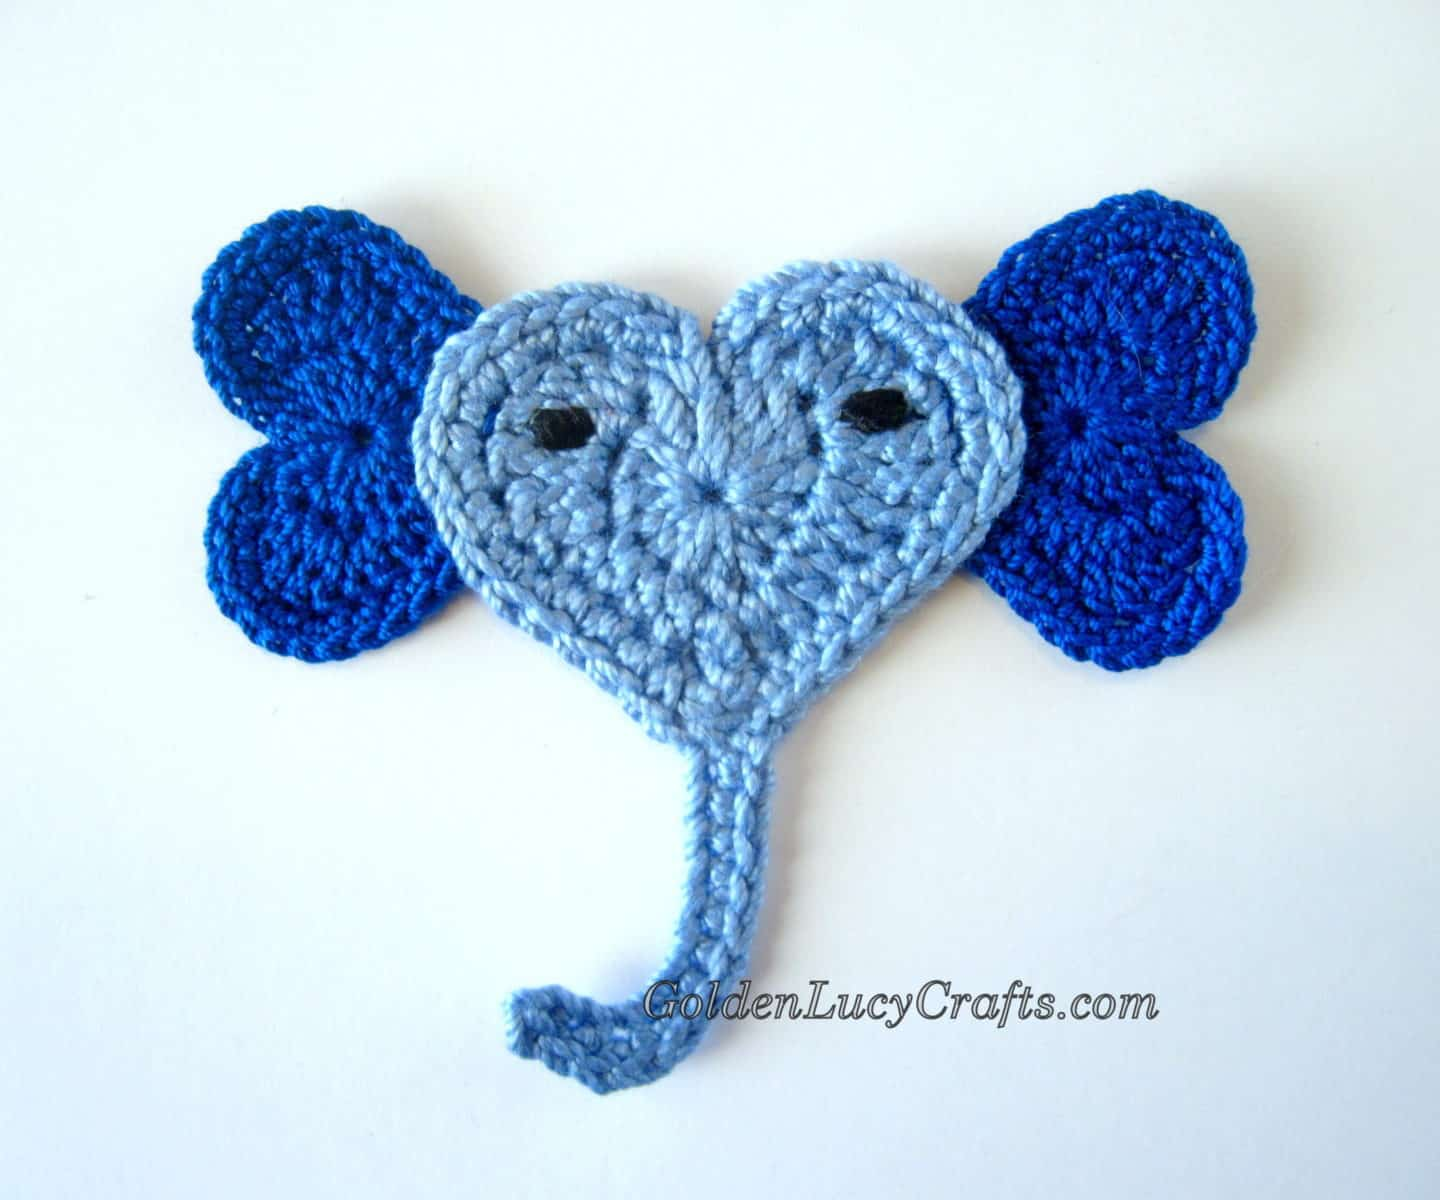 Crochet Elephant Applique